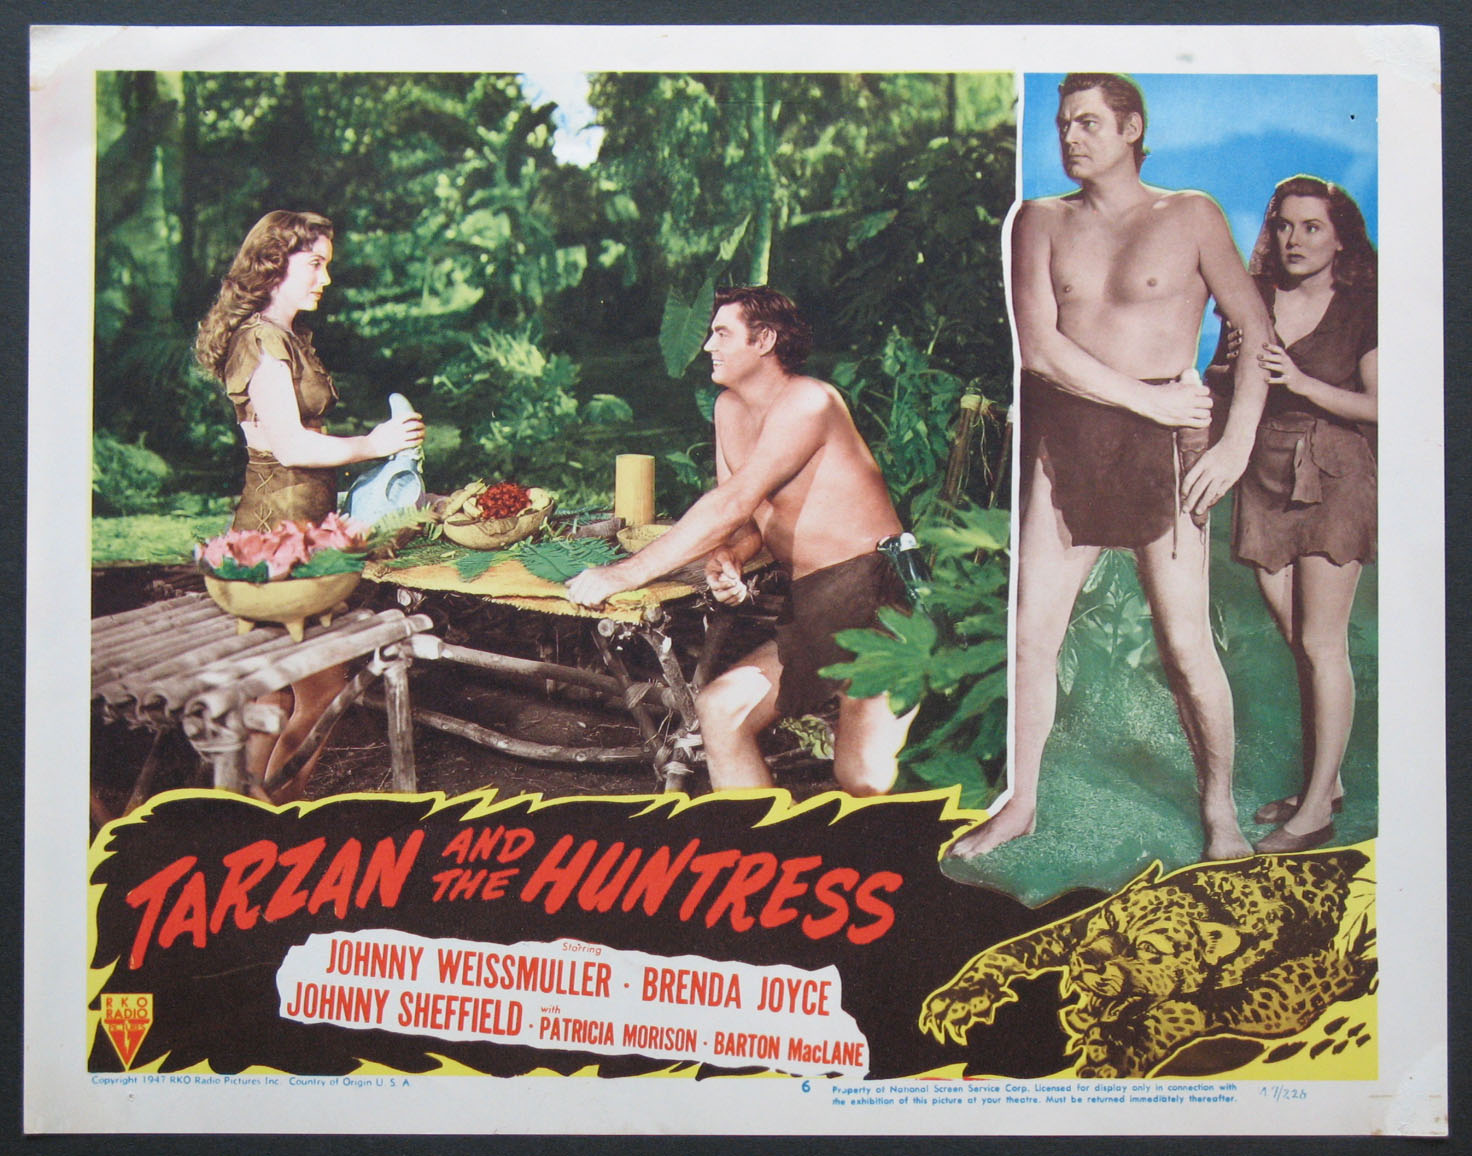 TARZAN AND THE HUNTRESS @ FilmPosters.com